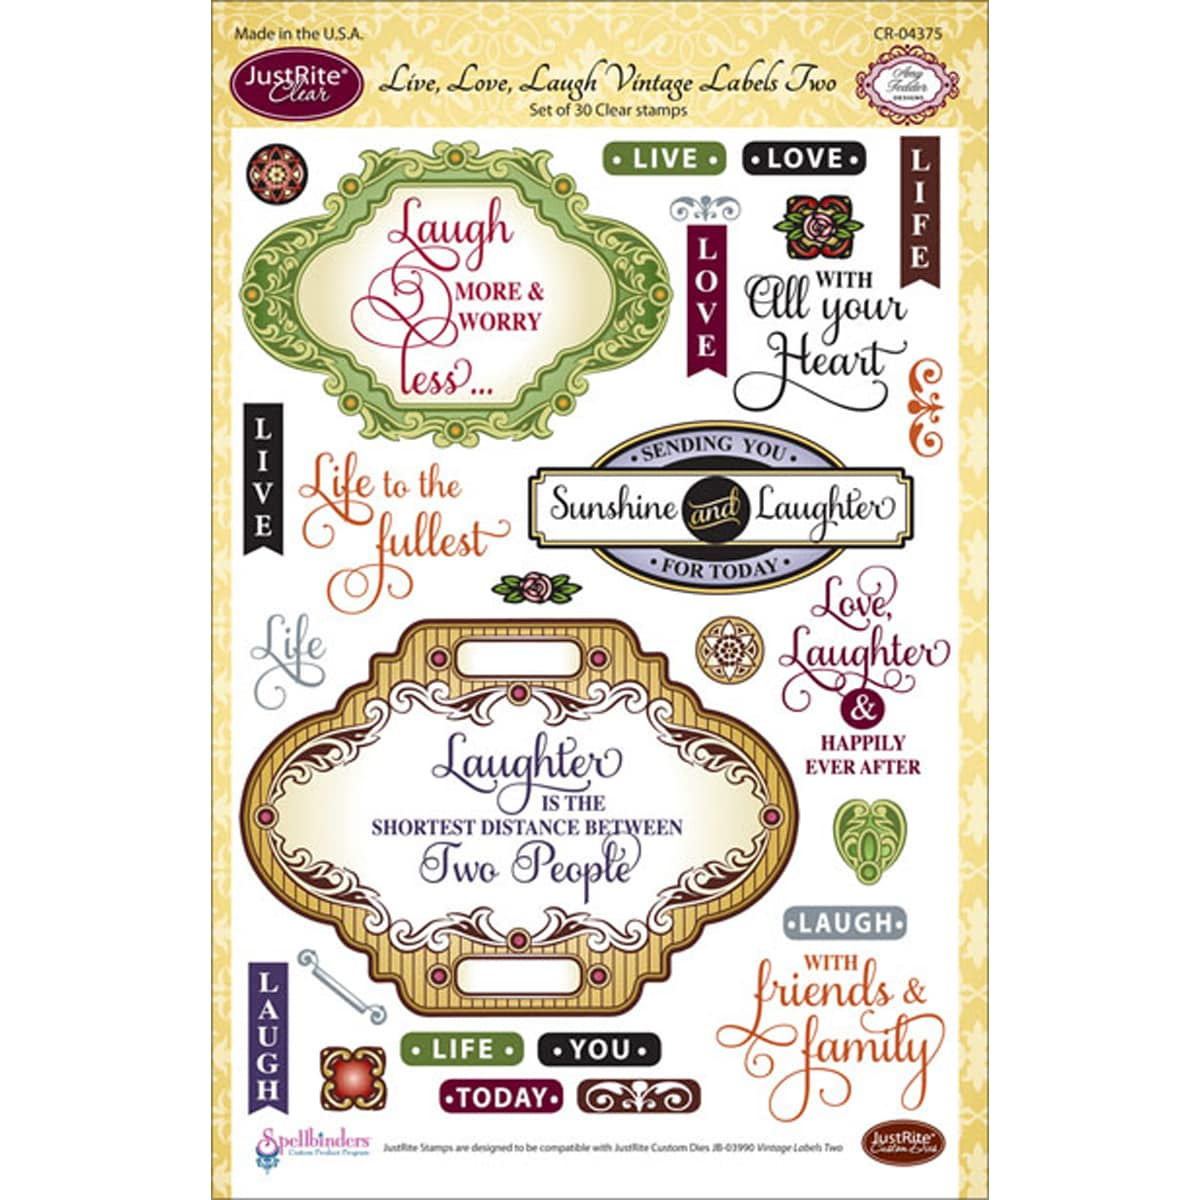 Just Rite JustRite Stampers 6X8in Clear Stamp Set-Live, Love, Laugh, Vint Labels Two 30pc at Sears.com